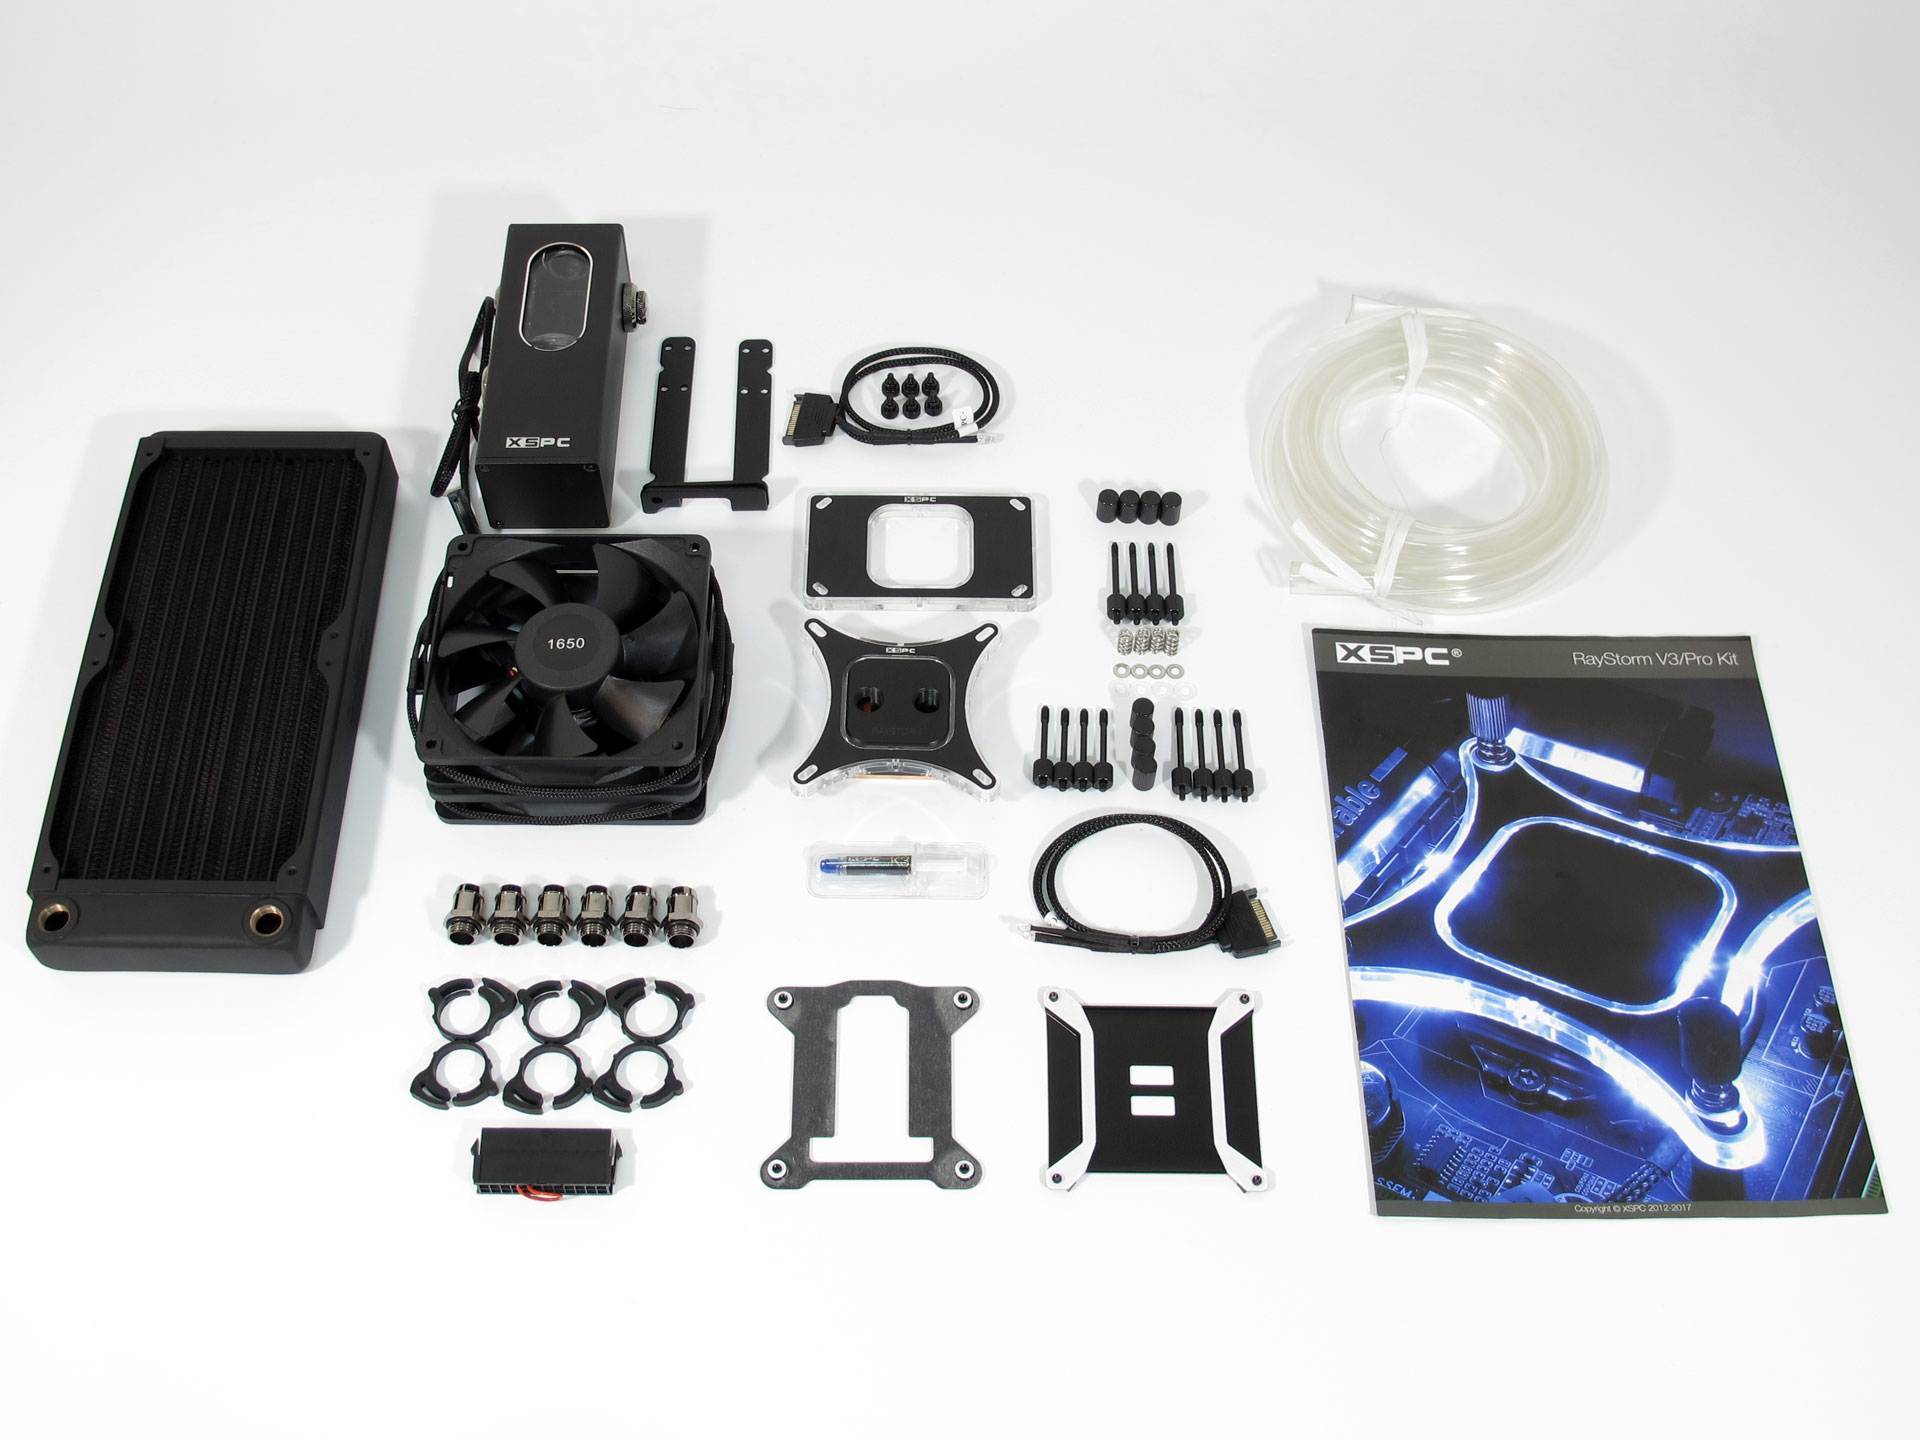 ex240-ion-kit-contents.jpg